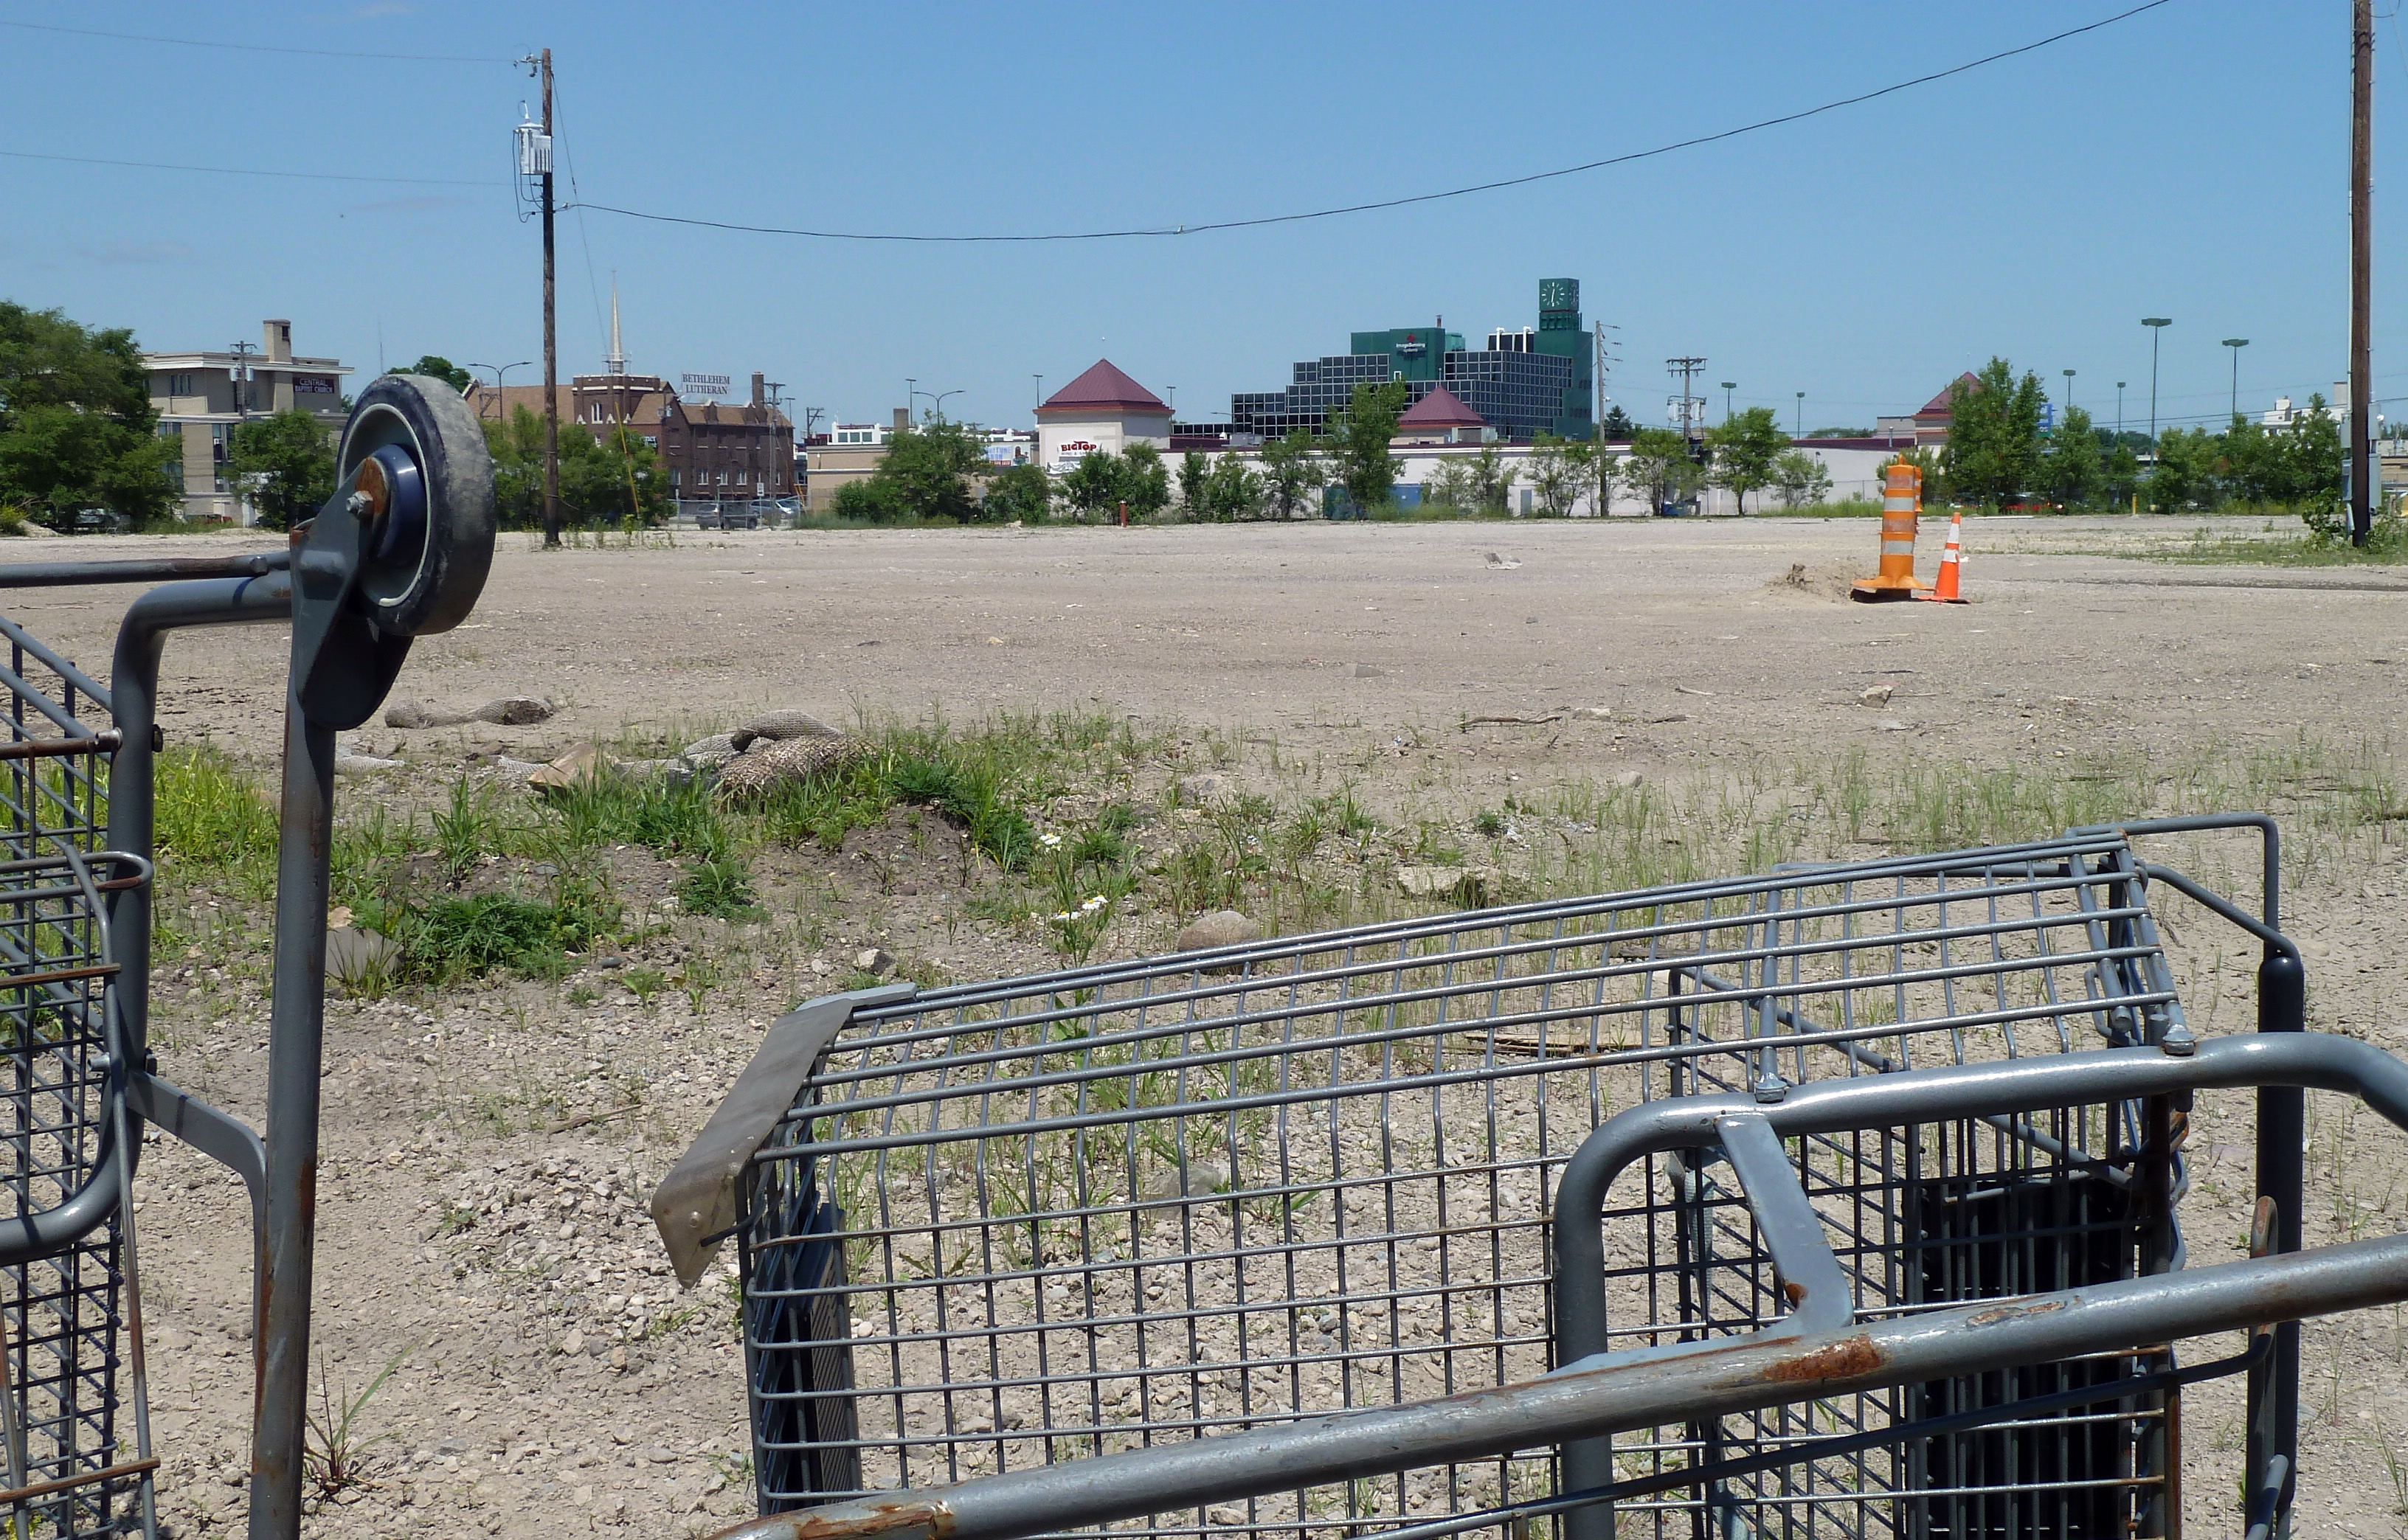 Except for a few shopping carts and cones the Midway's bus barn site is cleared of debris for the first time in 20 years and awaits the OK for EPA cleanup. Photo by Brian Quarstad.